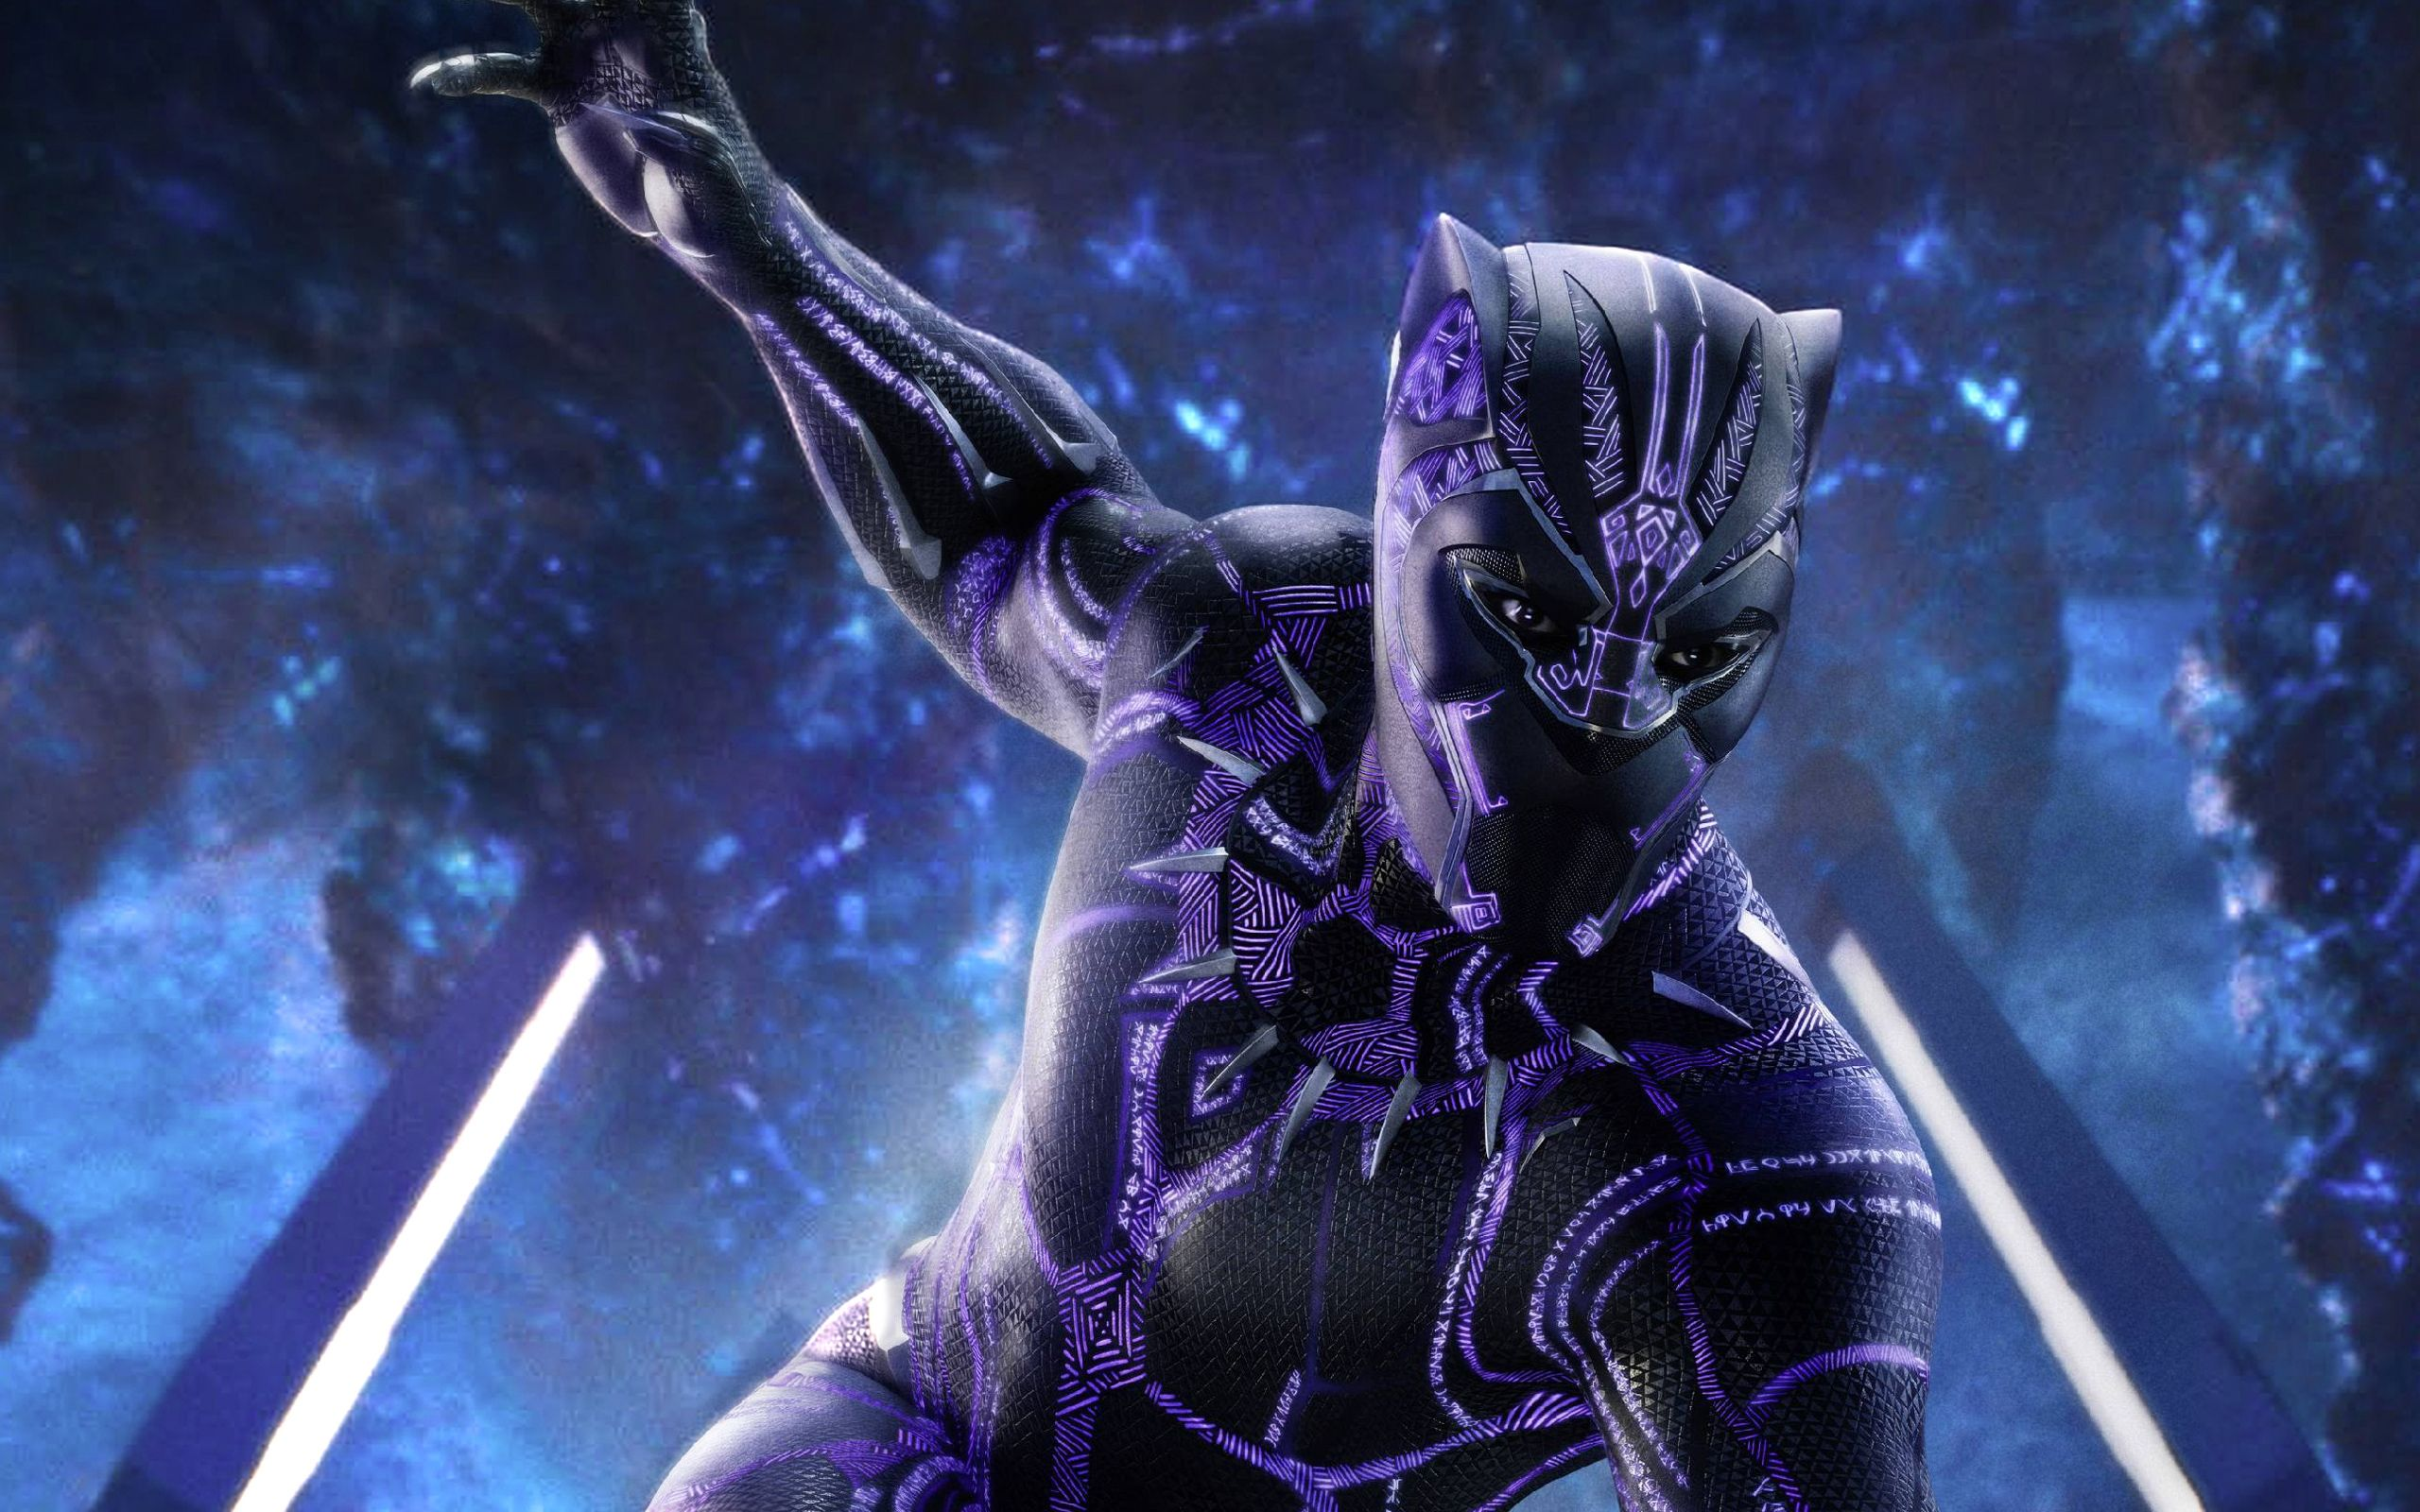 Purple Black Panther Wallpapers Top Free Purple Black Panther Backgrounds Wallpaperaccess